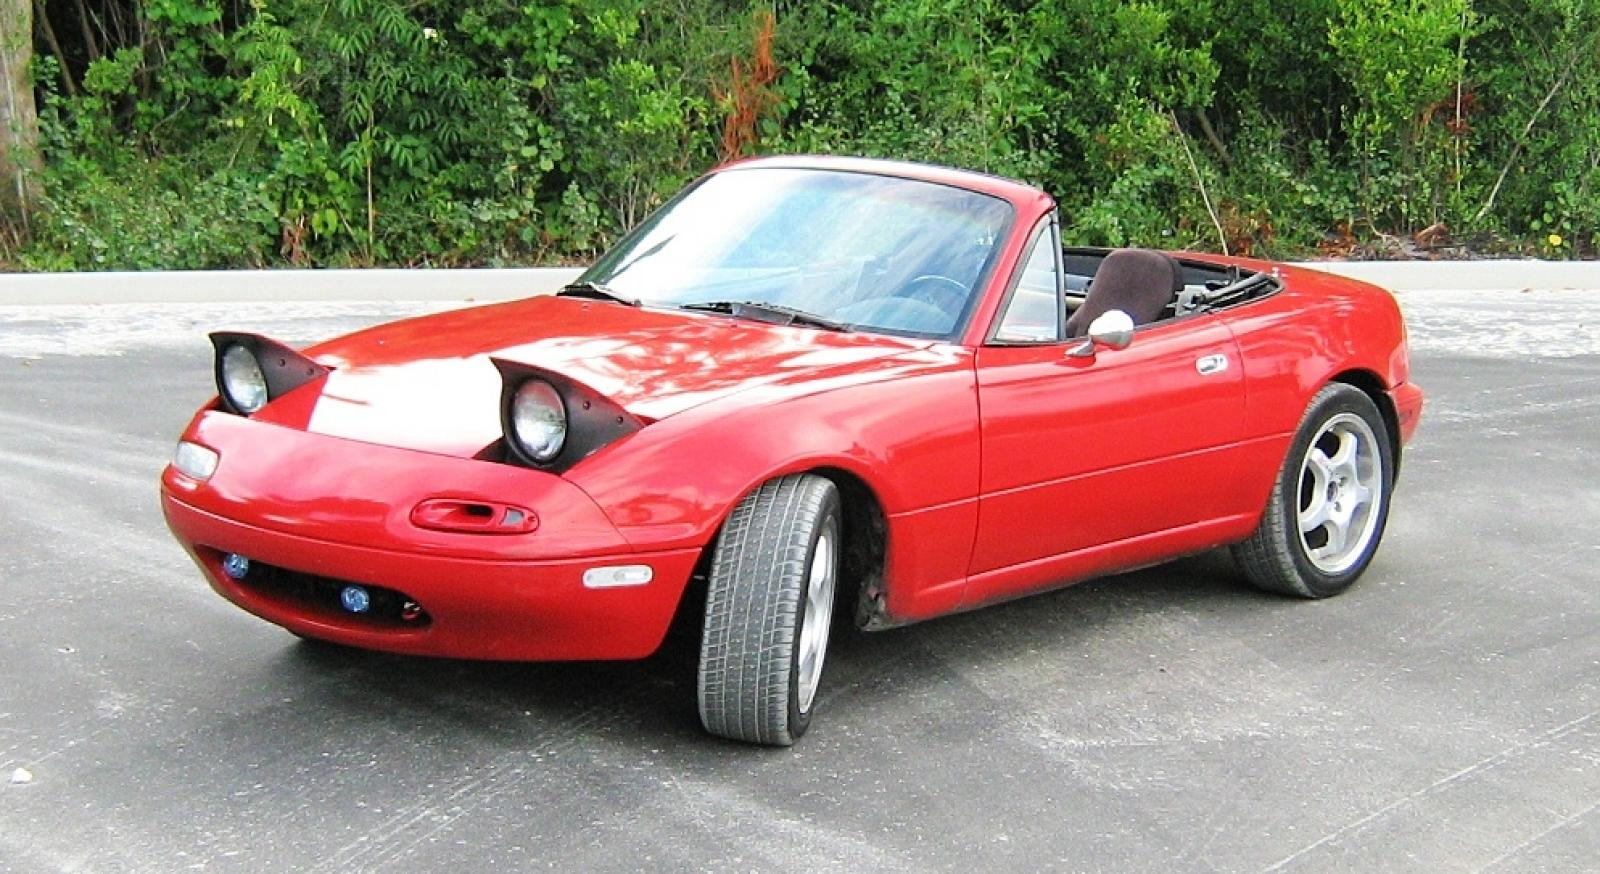 1991 mazda mx 5 miata information and photos zombiedrive. Black Bedroom Furniture Sets. Home Design Ideas